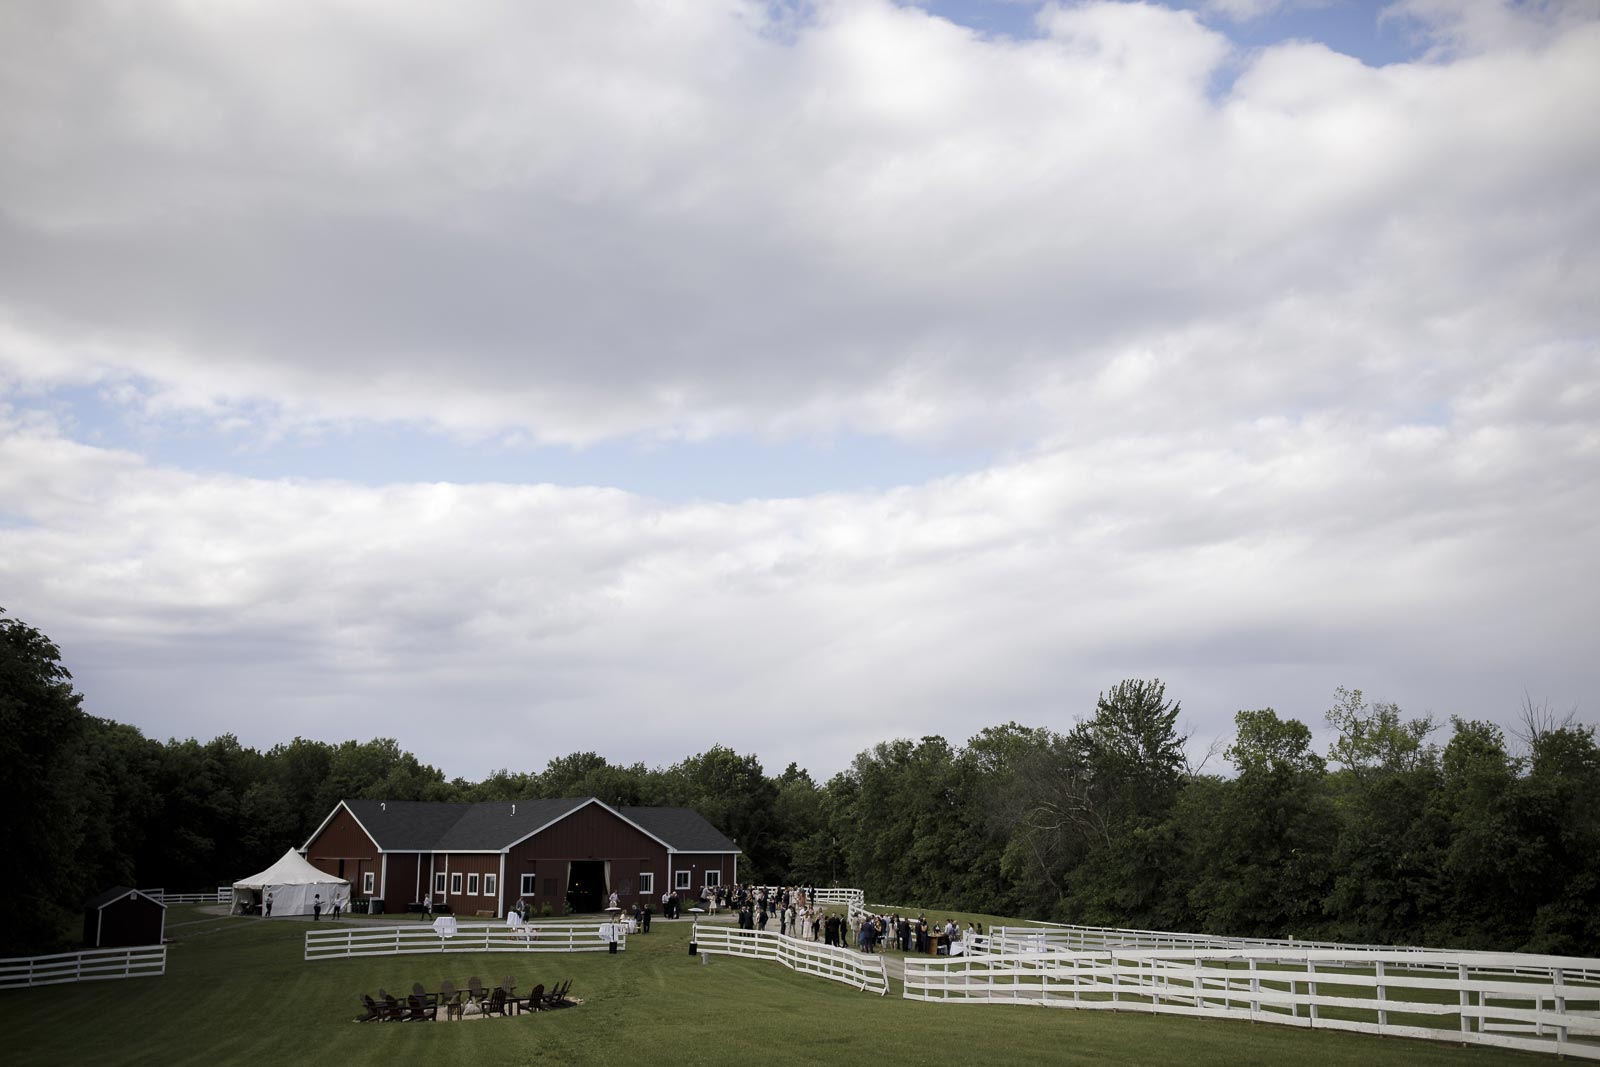 barn-at-liberty-farms-wedding-hudson-valley-alekseyk-photography-1.jpg